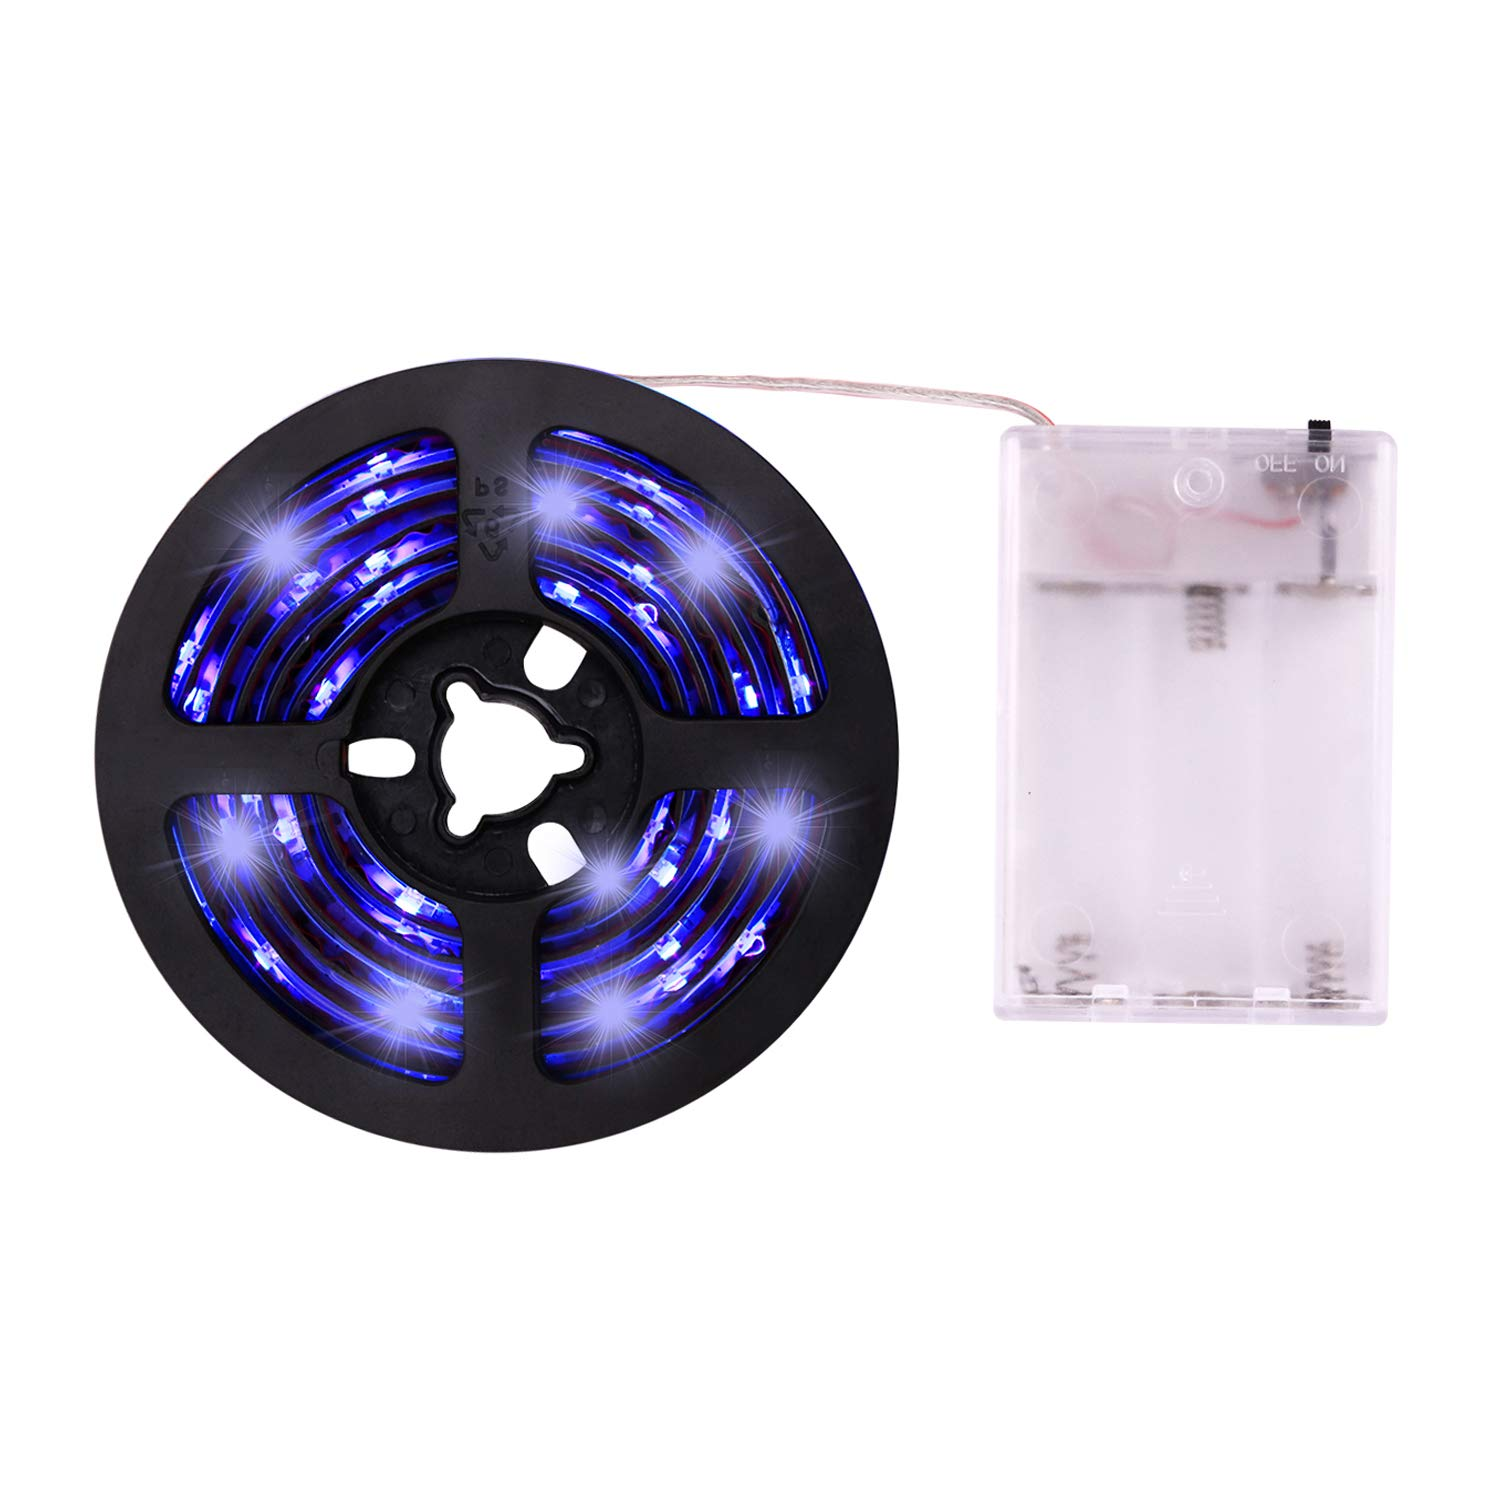 UV Light Strip - iCreating 2018 New Design Ultraviolet Battery Operated LED Black Light Strip Kit with 6.6FT 2M 60Units SMD 3528 IP65 Waterproof Super Bright LED Strip Lights, Battery Case